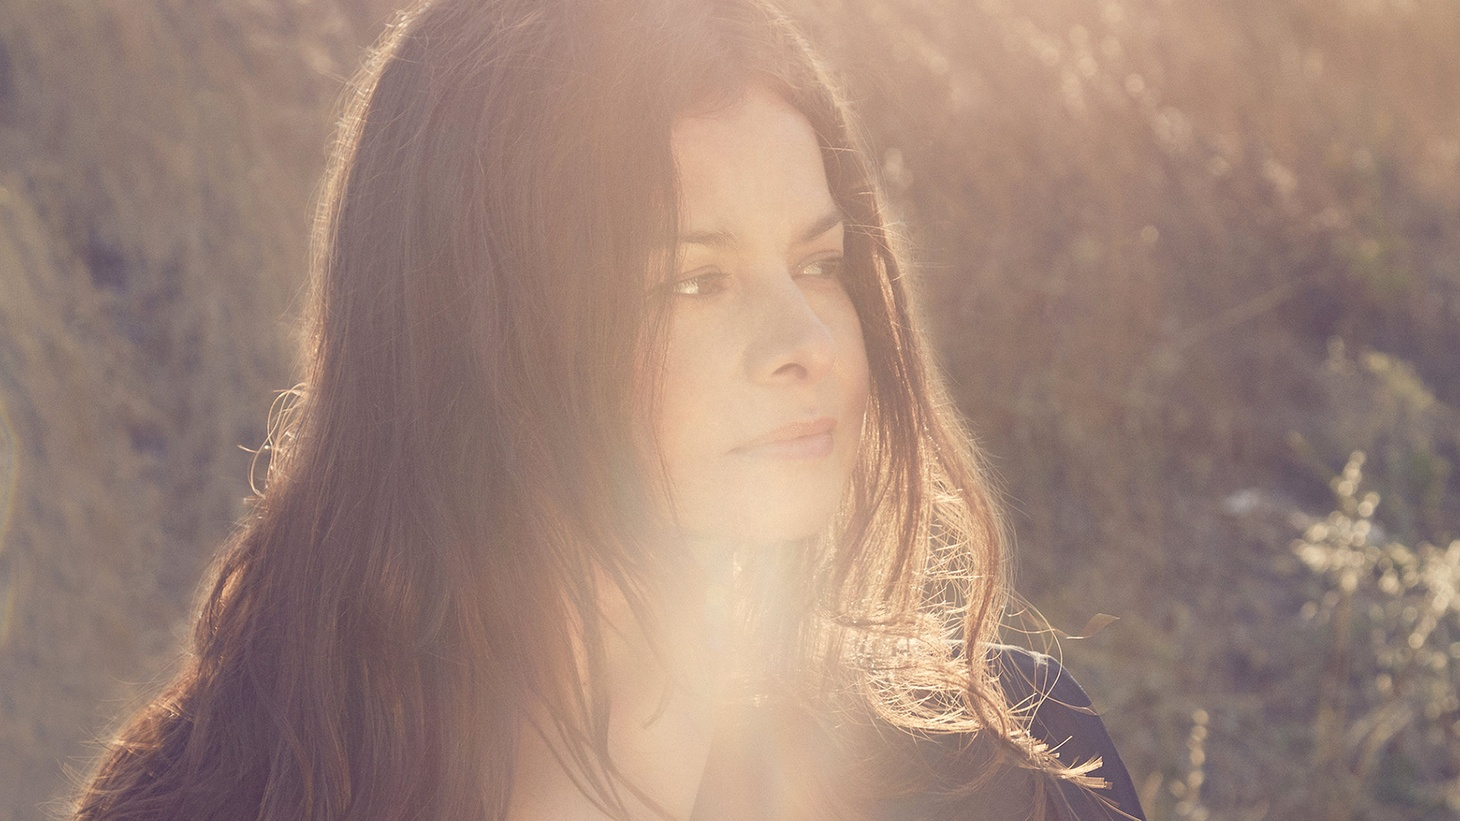 Enigmatic frontwoman Hope Sandoval met My Bloody Valentine drummer Colm Ó'Cíosóig almost two decades ago in a dark London nightclub. There they forged a collaboration and their influential sound.